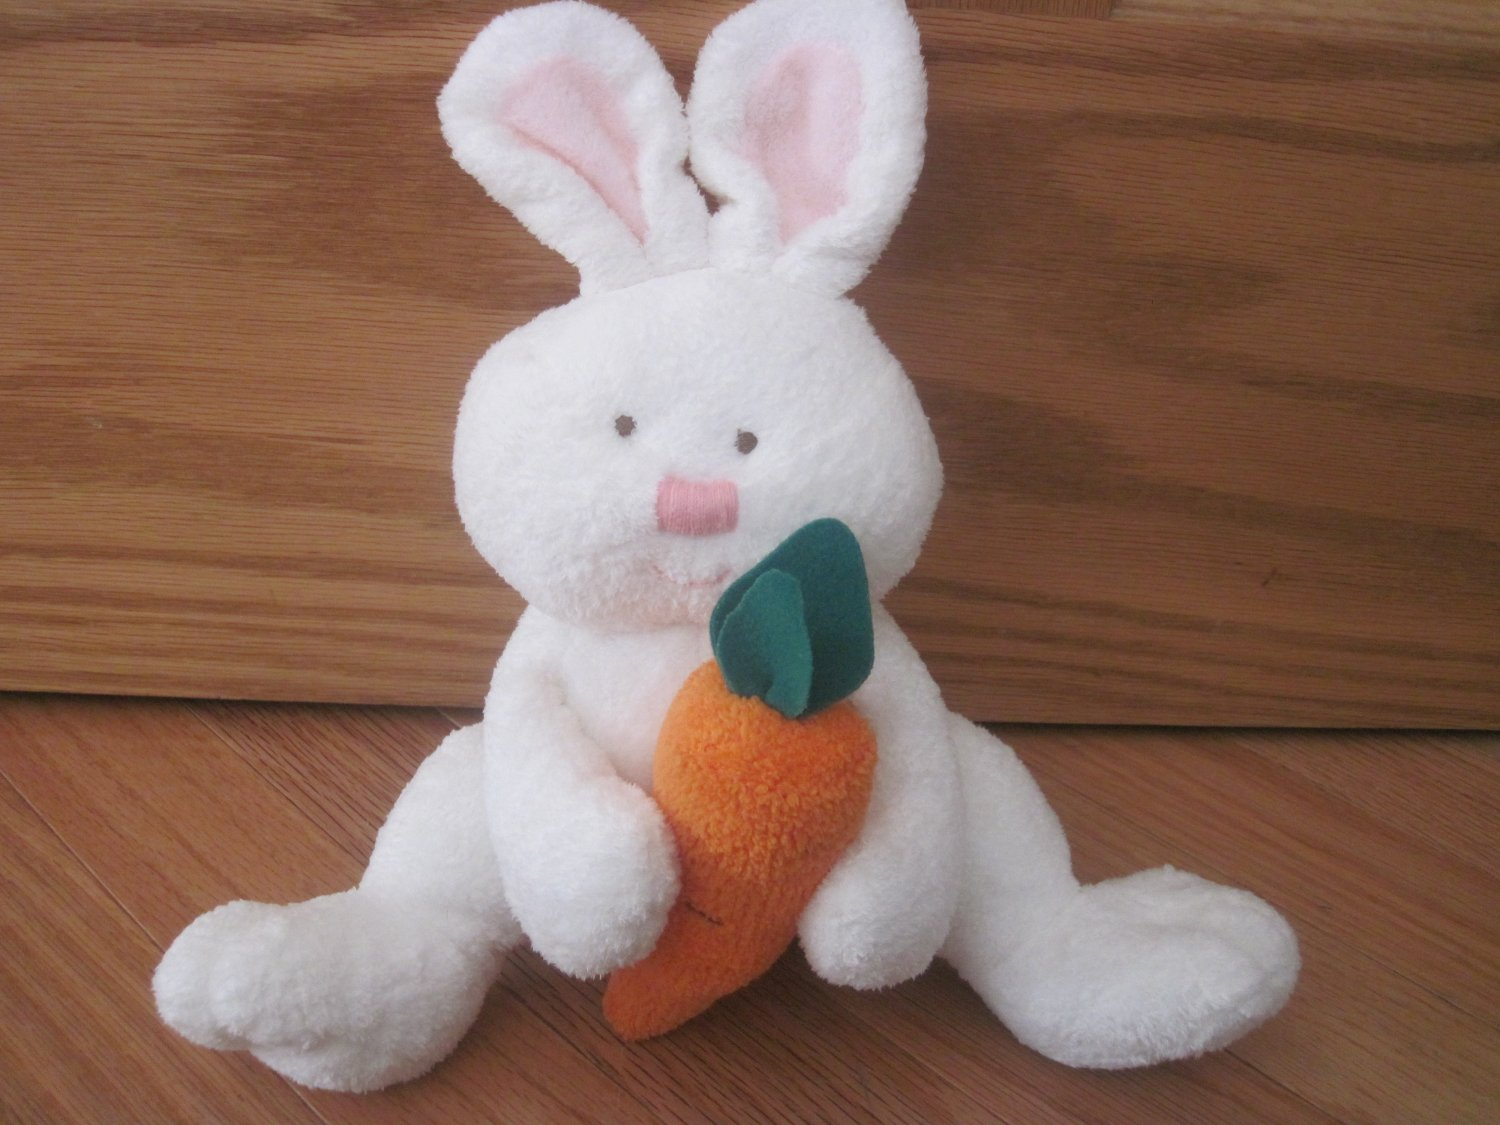 Ty Pluffies Plush White Bunny Rabbit Holding Carrot Named